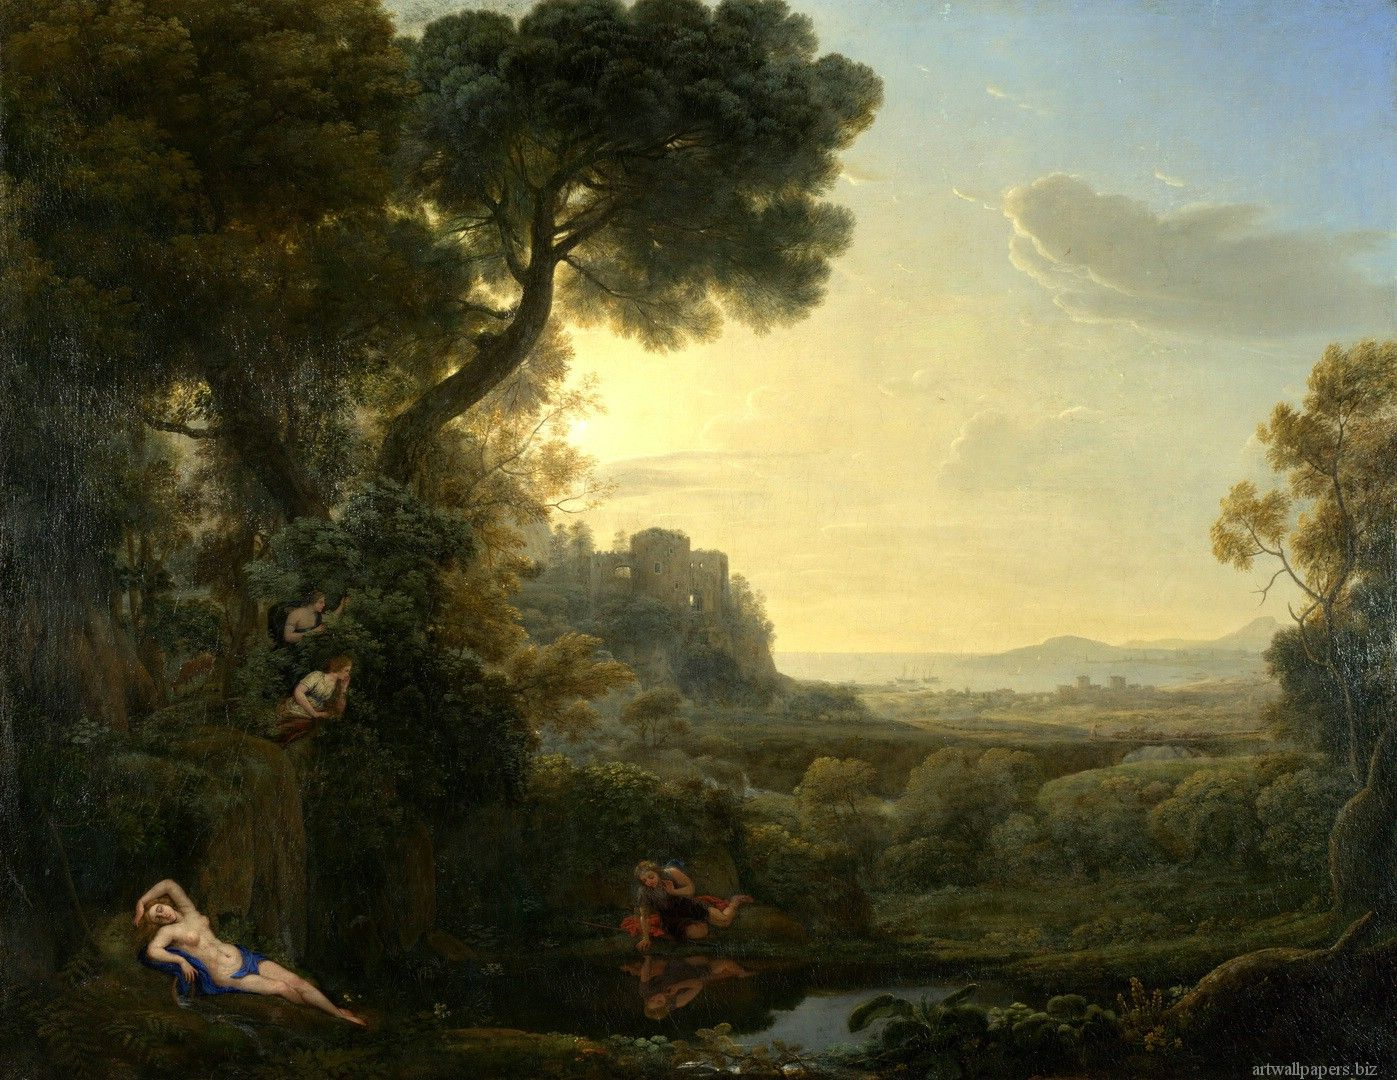 landscape narcissus and echo oil on canvas times  landscape narcissus and echo 1645 oil on canvas 94 5 times